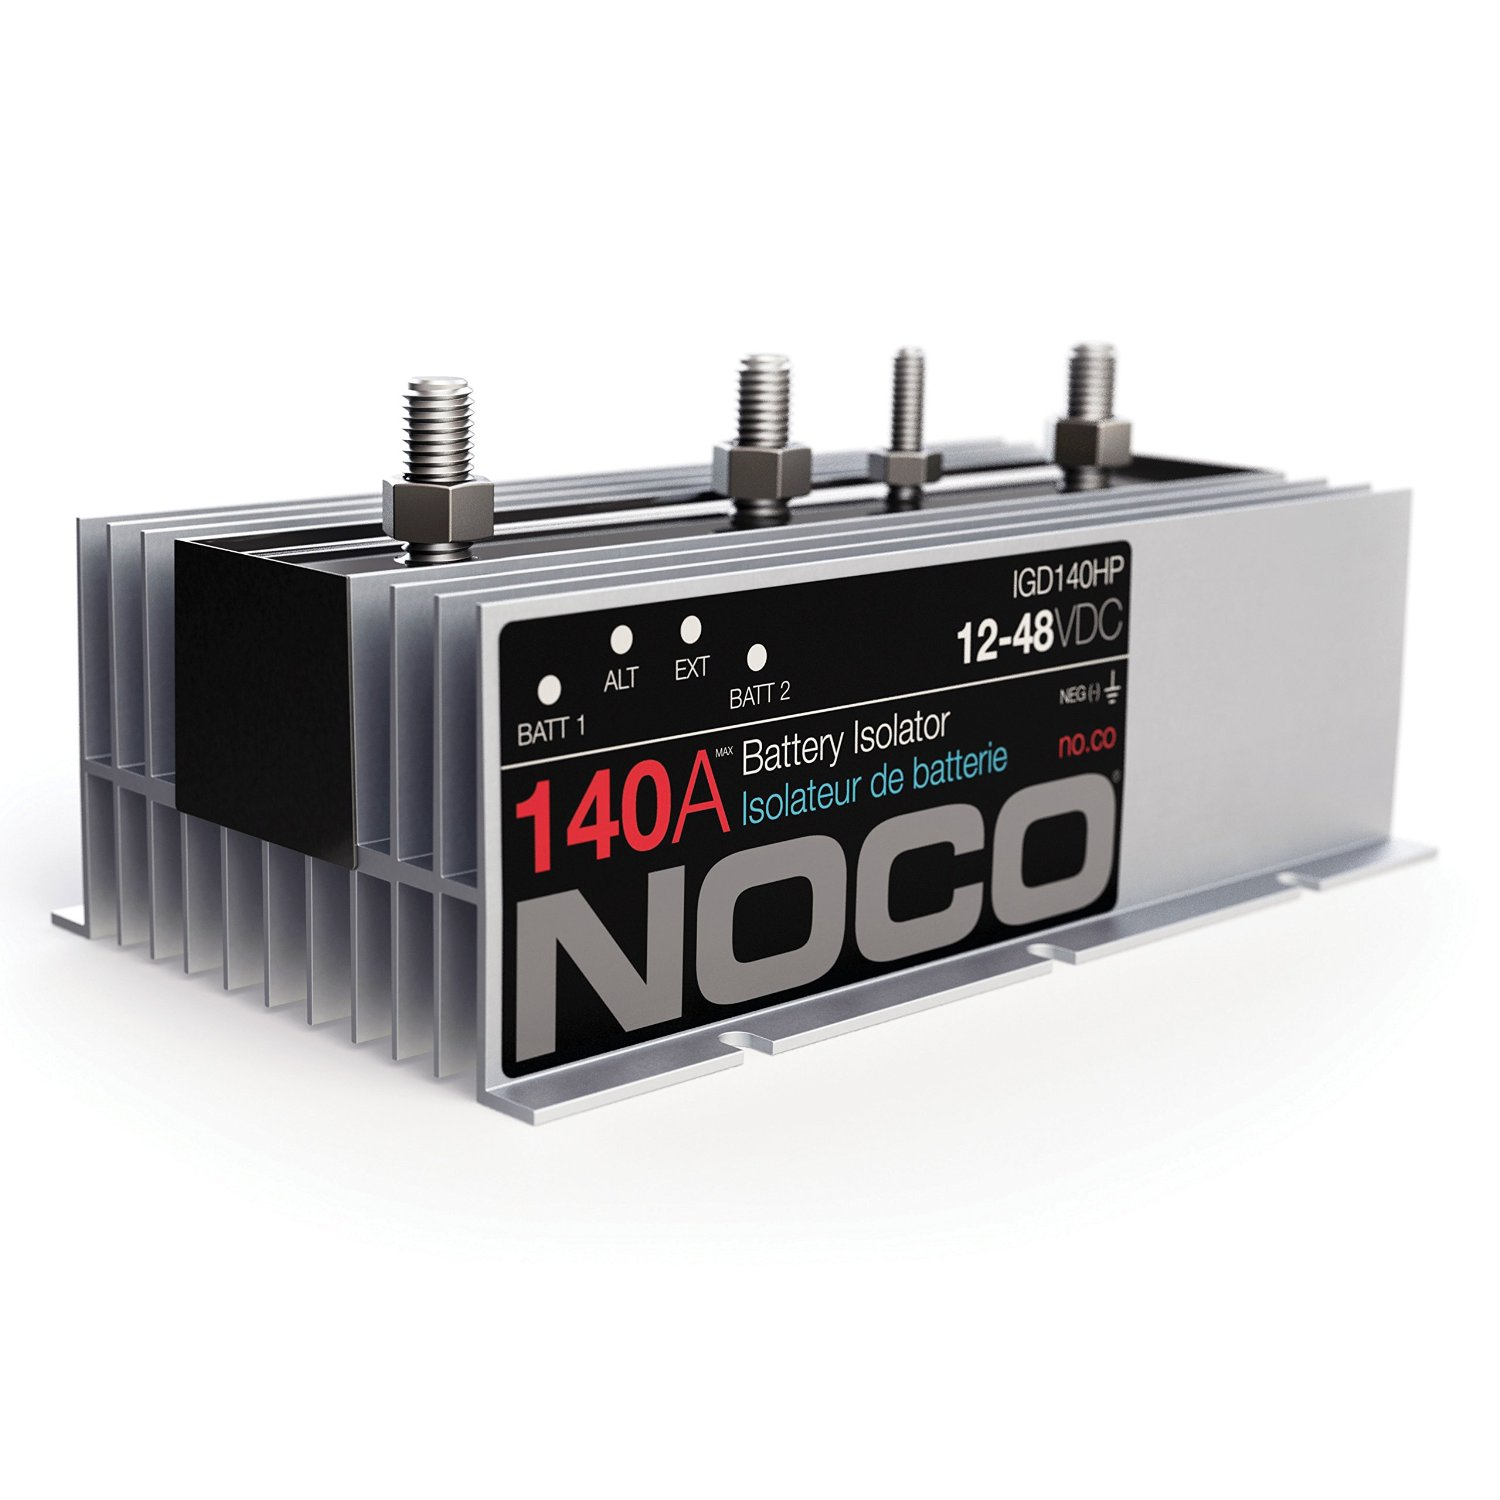 NOCO IGD140HP 140 Amp Battery Isolator on battery switch wiring diagram, battery isolator solenoid diagram, dual battery isolator diagram, battery isolator circuit diagram, noco battery isolator installation, boat battery wiring diagram, noco igd200hp battery isolator 200 amp, rv battery isolator diagram, noco battery isolator truck chevy 2012, multi battery isolator diagram, battery isolation solenoid wiring diagram, dual battery wiring diagram, challenger on rv battery wiring diagram,